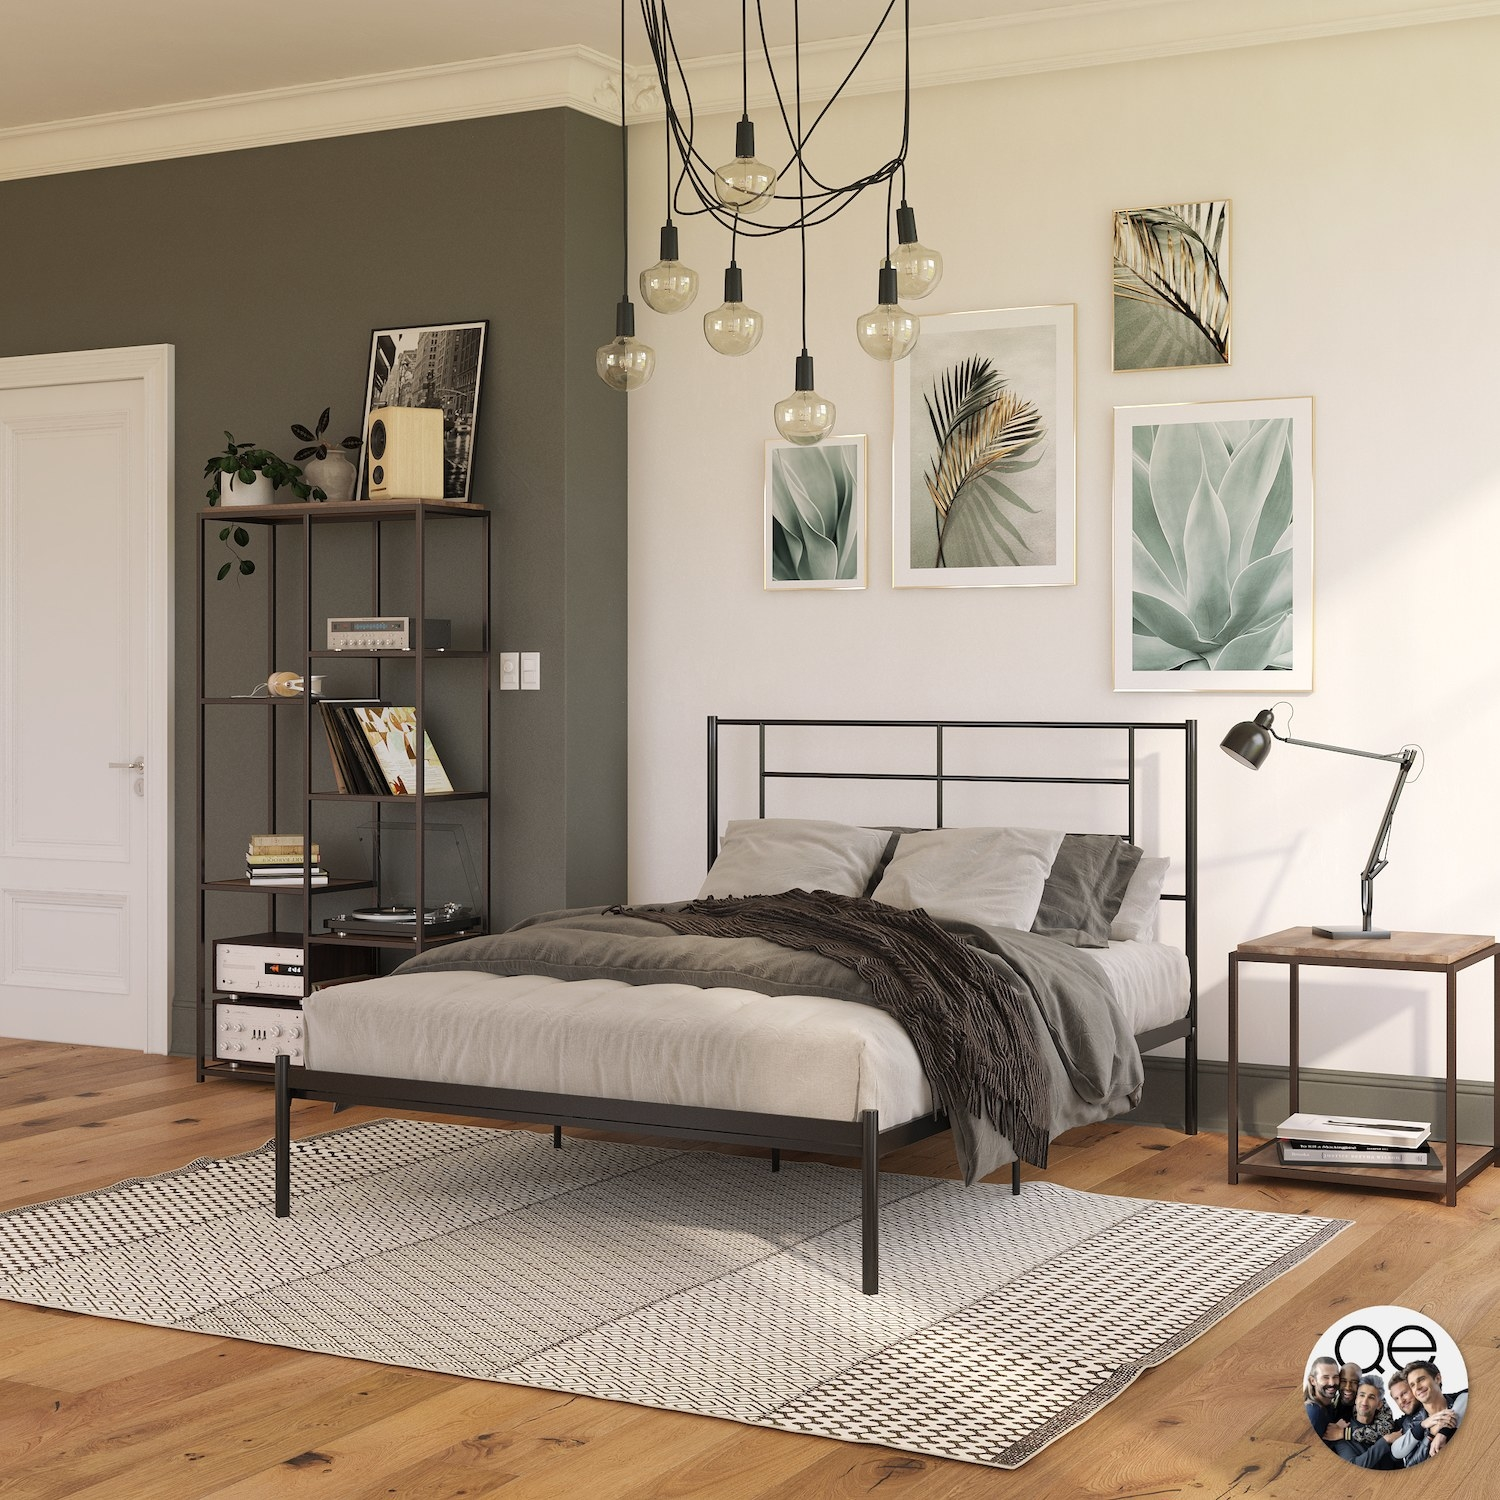 The black bed in a bedroom